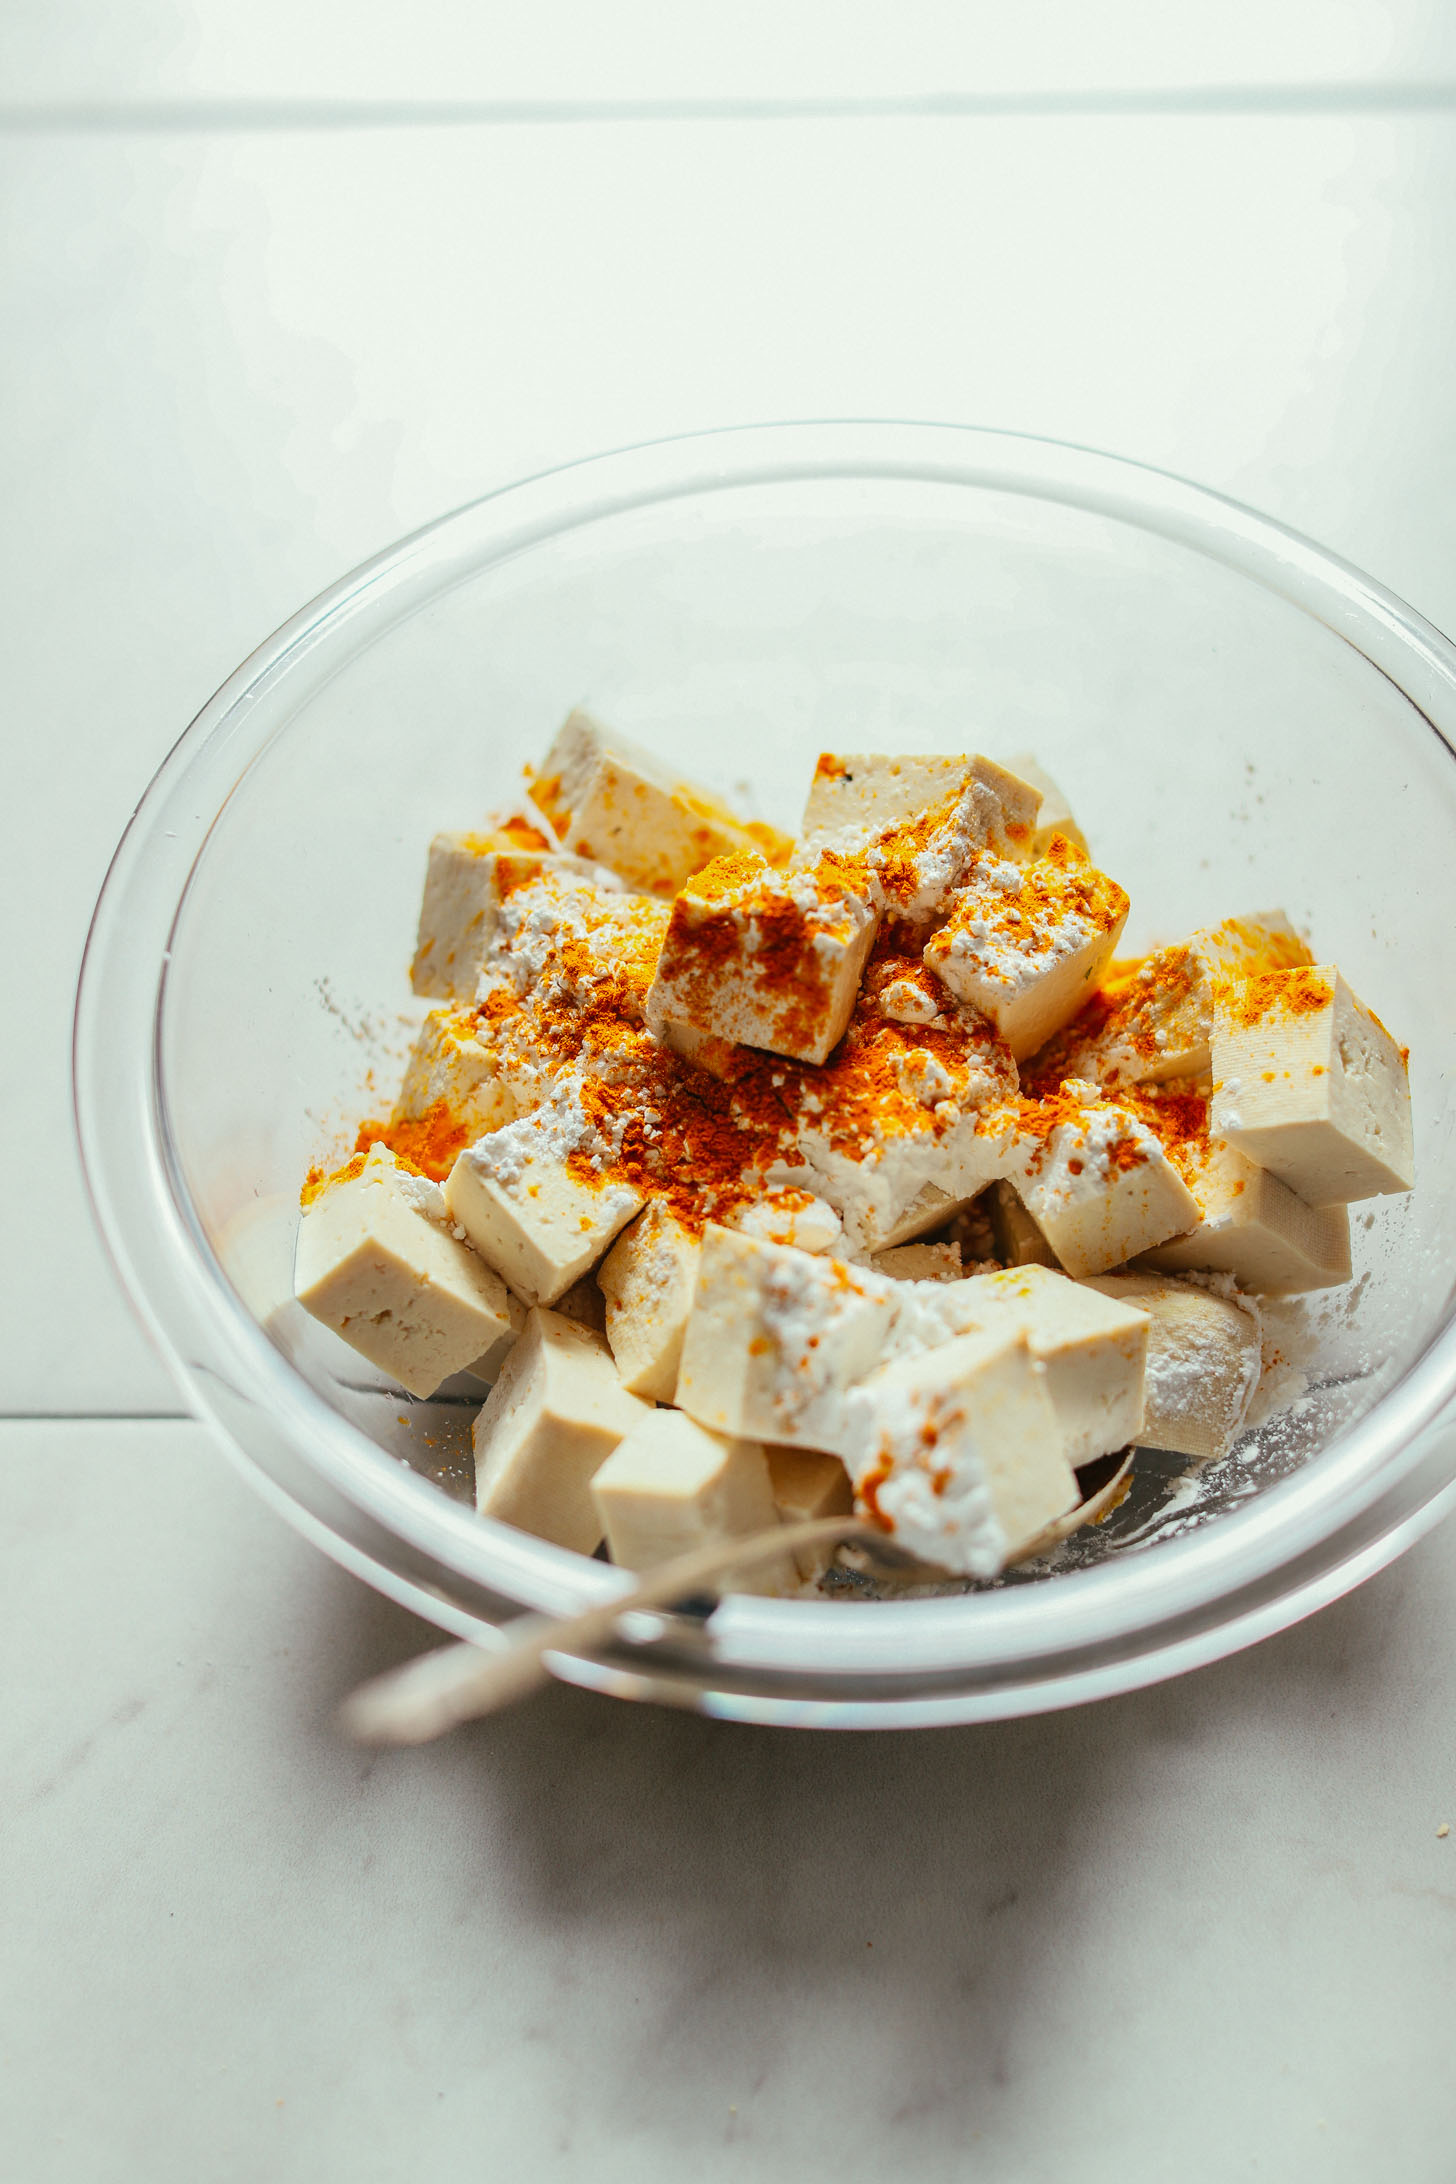 Cubed tofu seasoned with curry powder and cornstarch, tossed with a metal spoon in a glass bowl